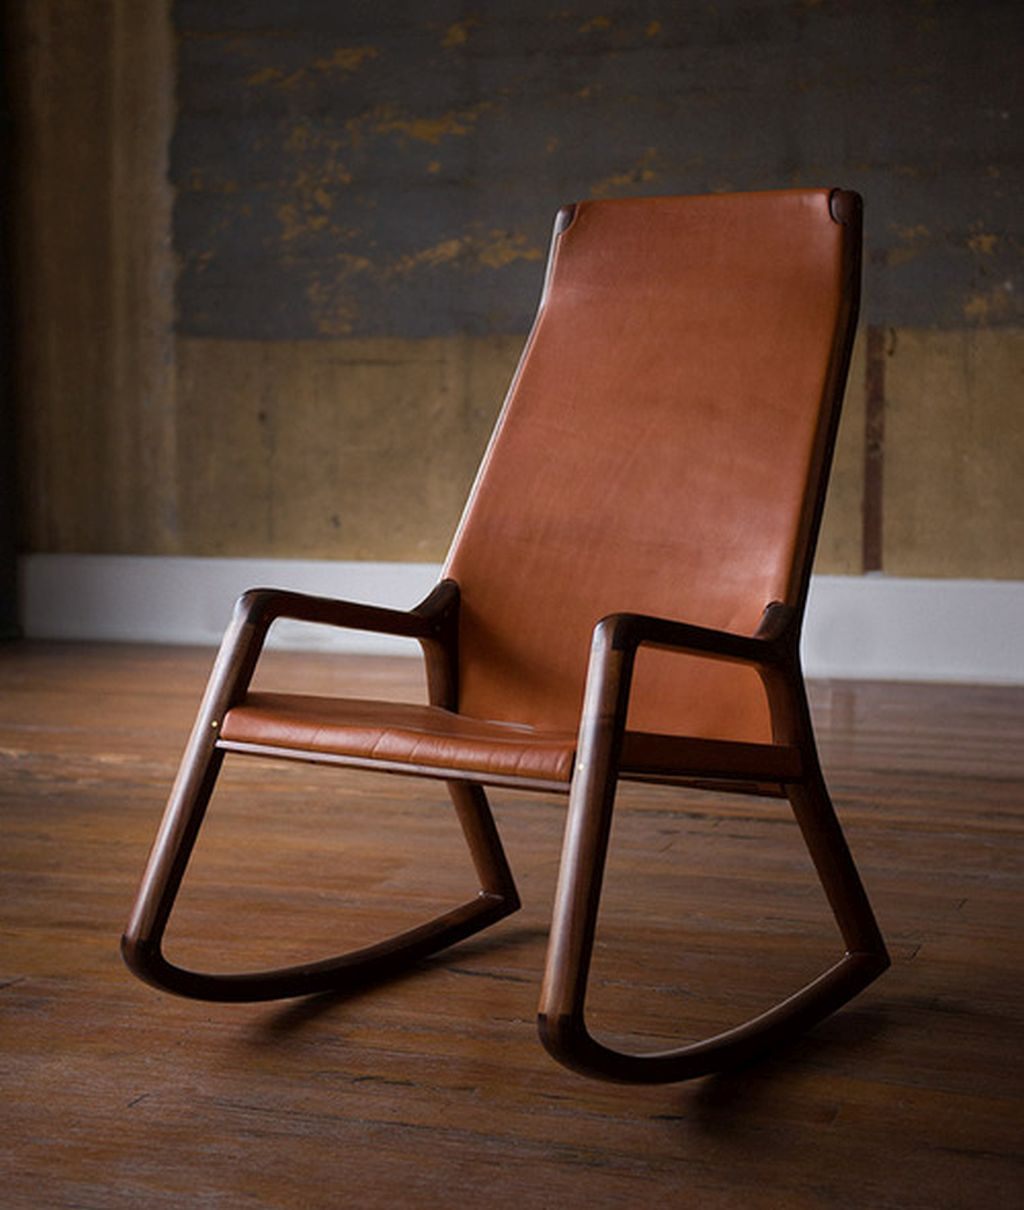 Reading Chairs 18 Best Reading Chairs For All Those Who Love To Read